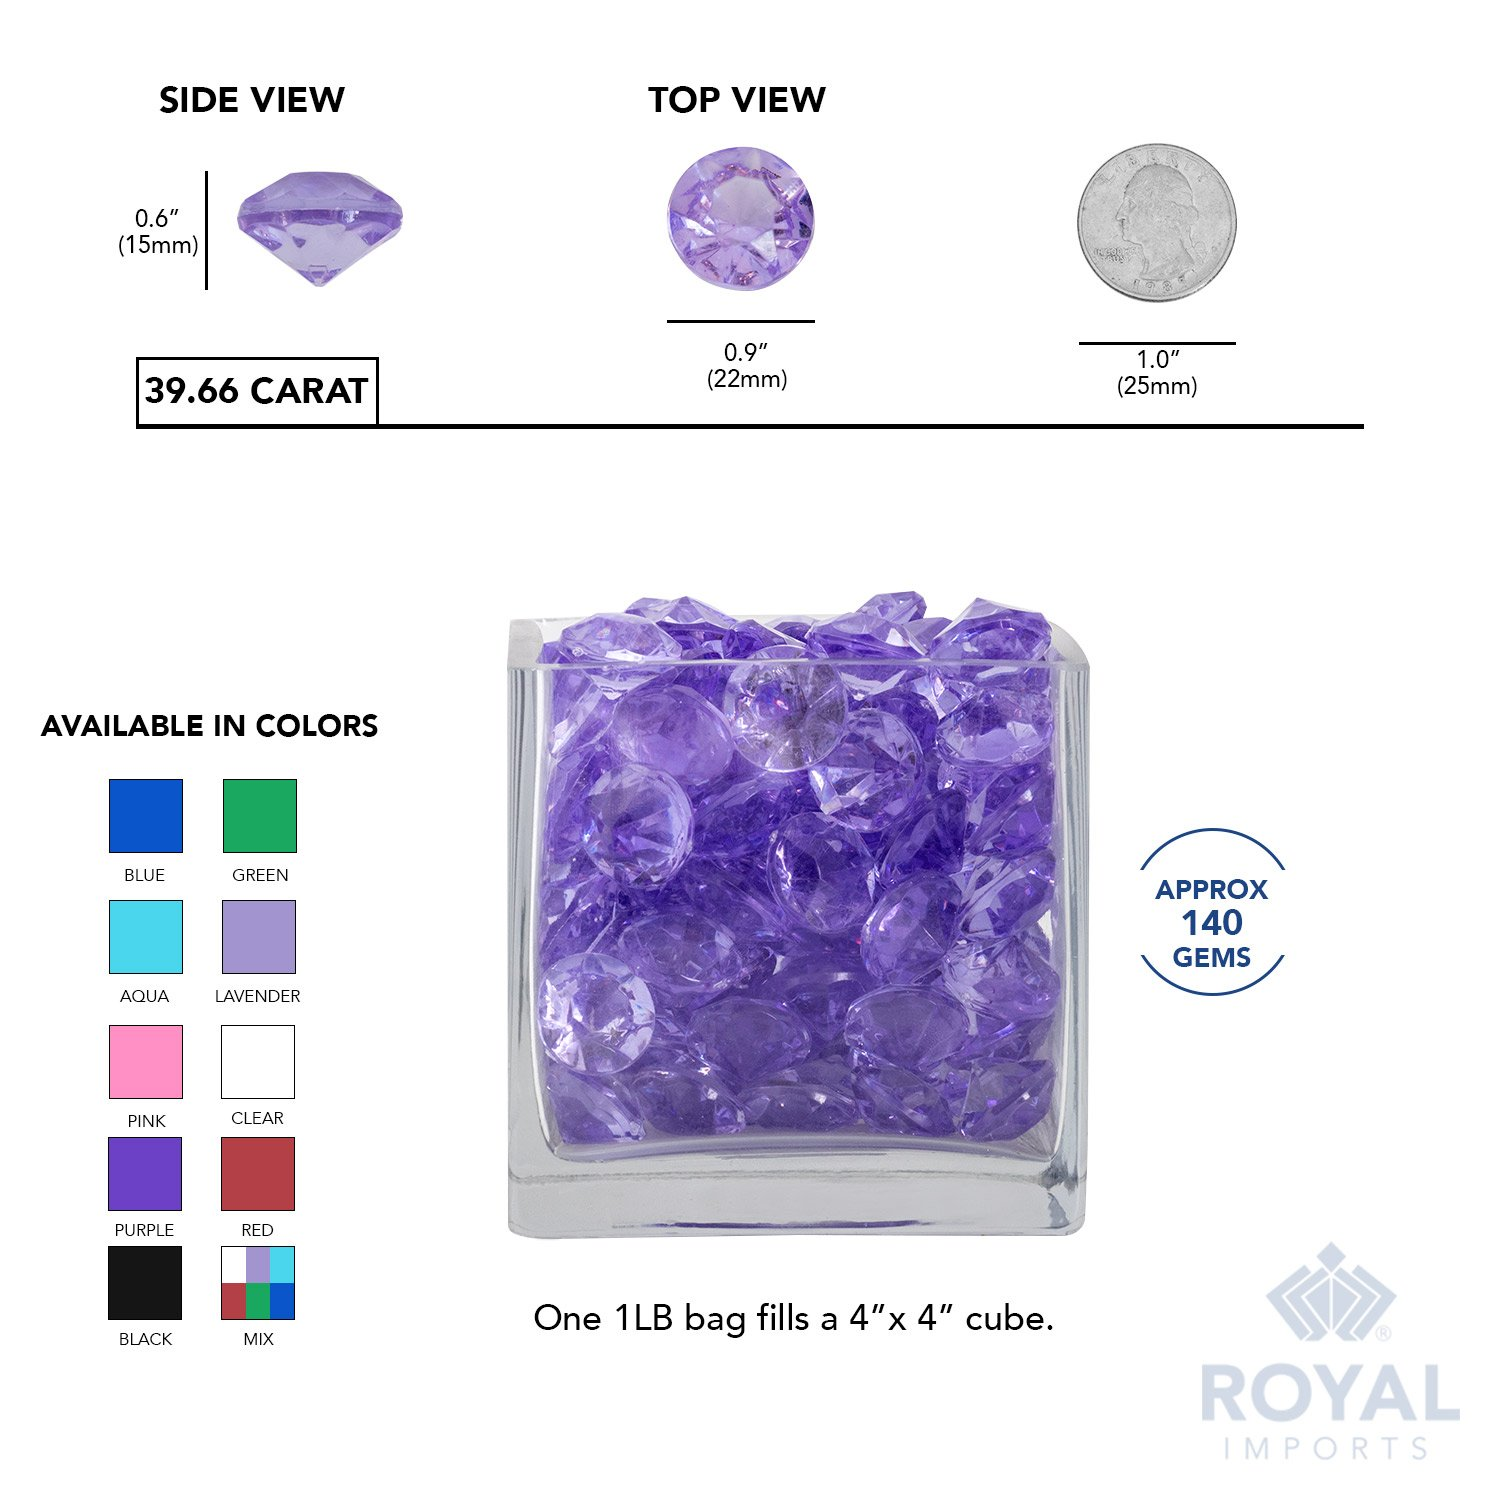 Acrylic Diamonds Gems Crystal Rocks for Vase Fillers 3 LB Bag, Gold Party Decoration Party Table Scatter Crafts by Royal Imports Photography Wedding